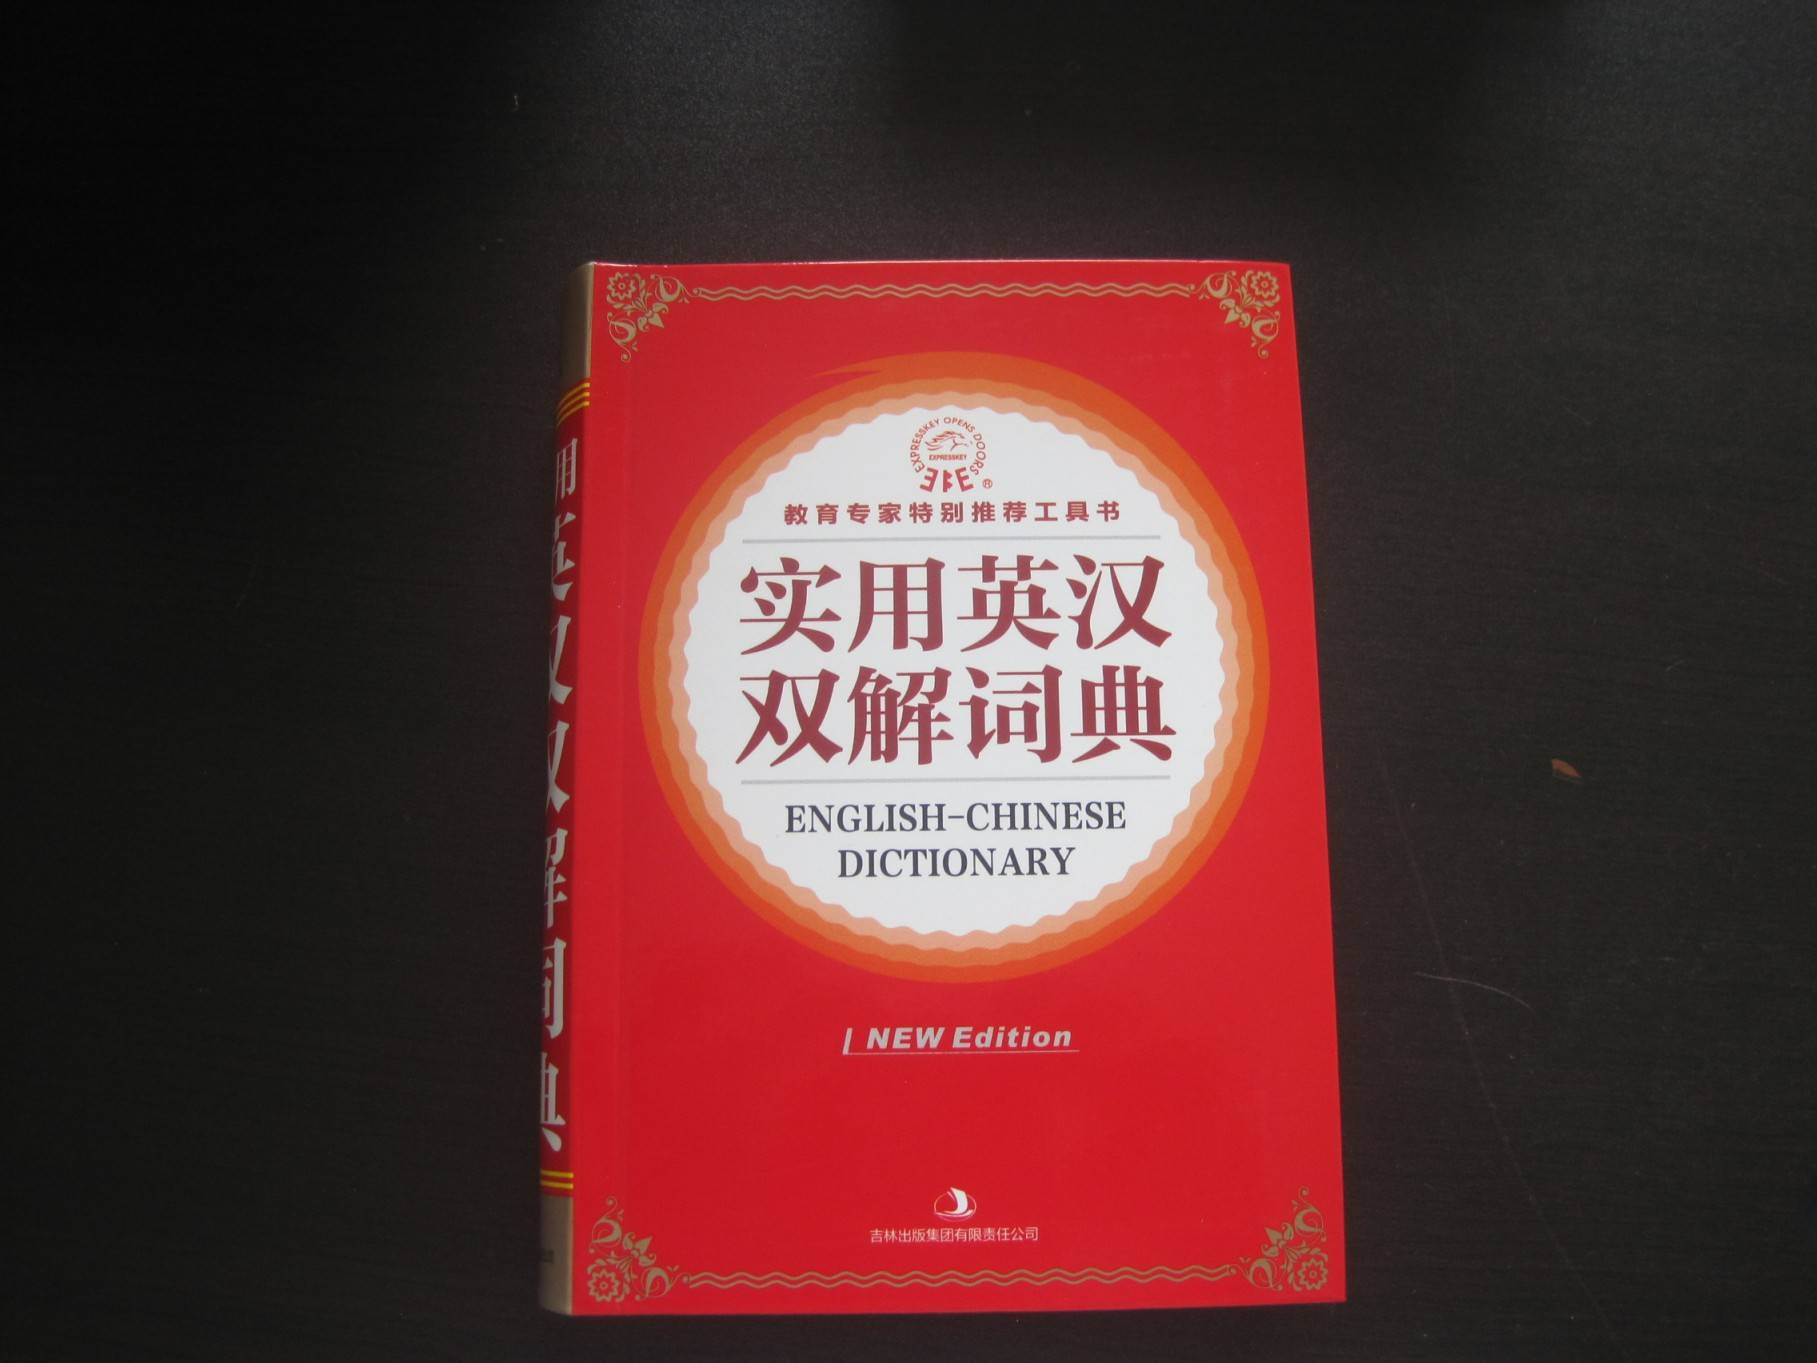 Dictionary,Hardcover book,round bank,H/T bands, Customized sizes and items are accepted